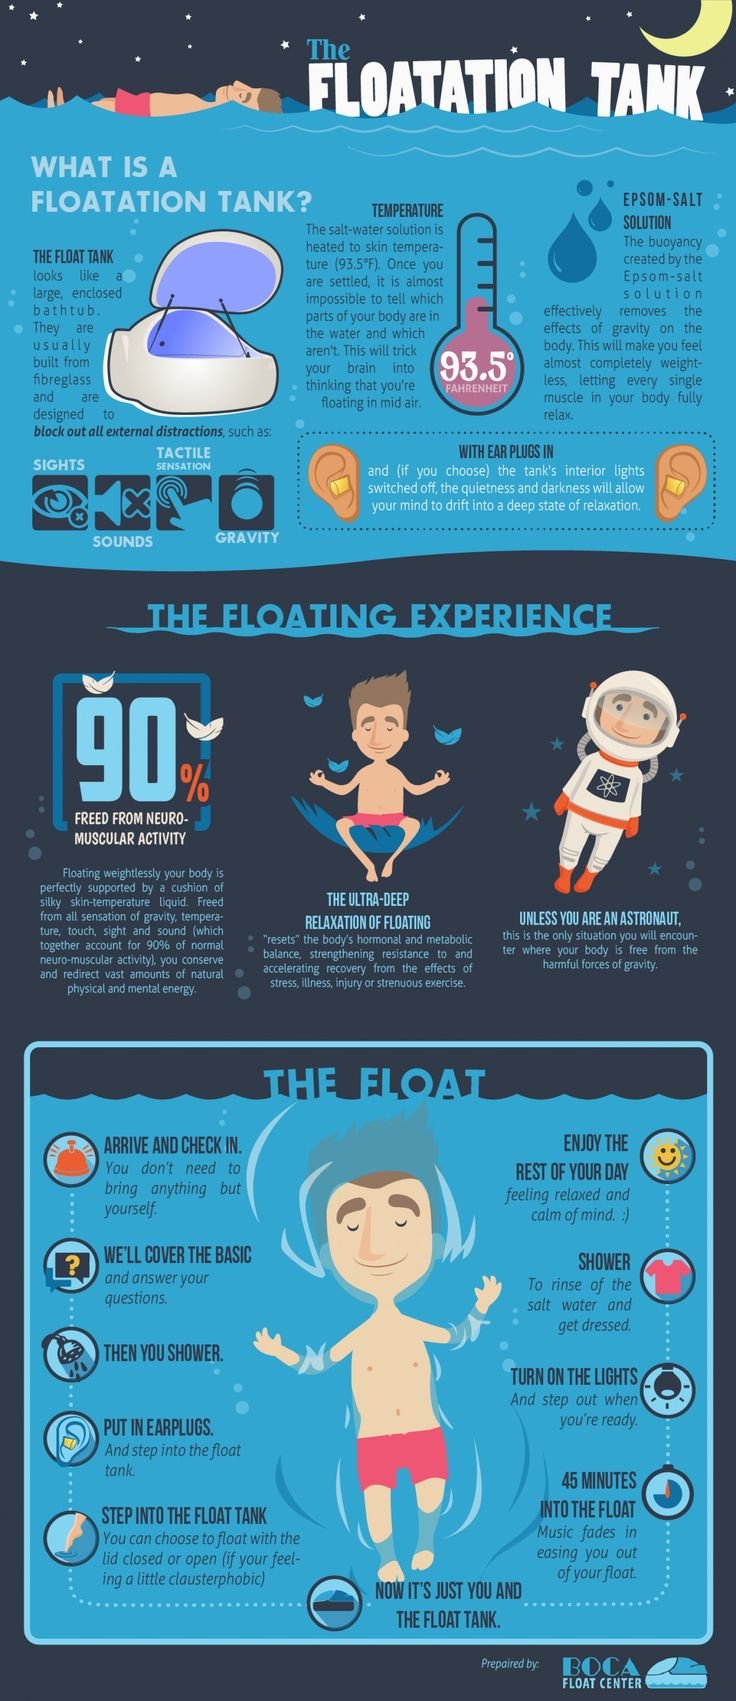 Sensory deprivation therapy is the equivalent of floating calmly in outer space.